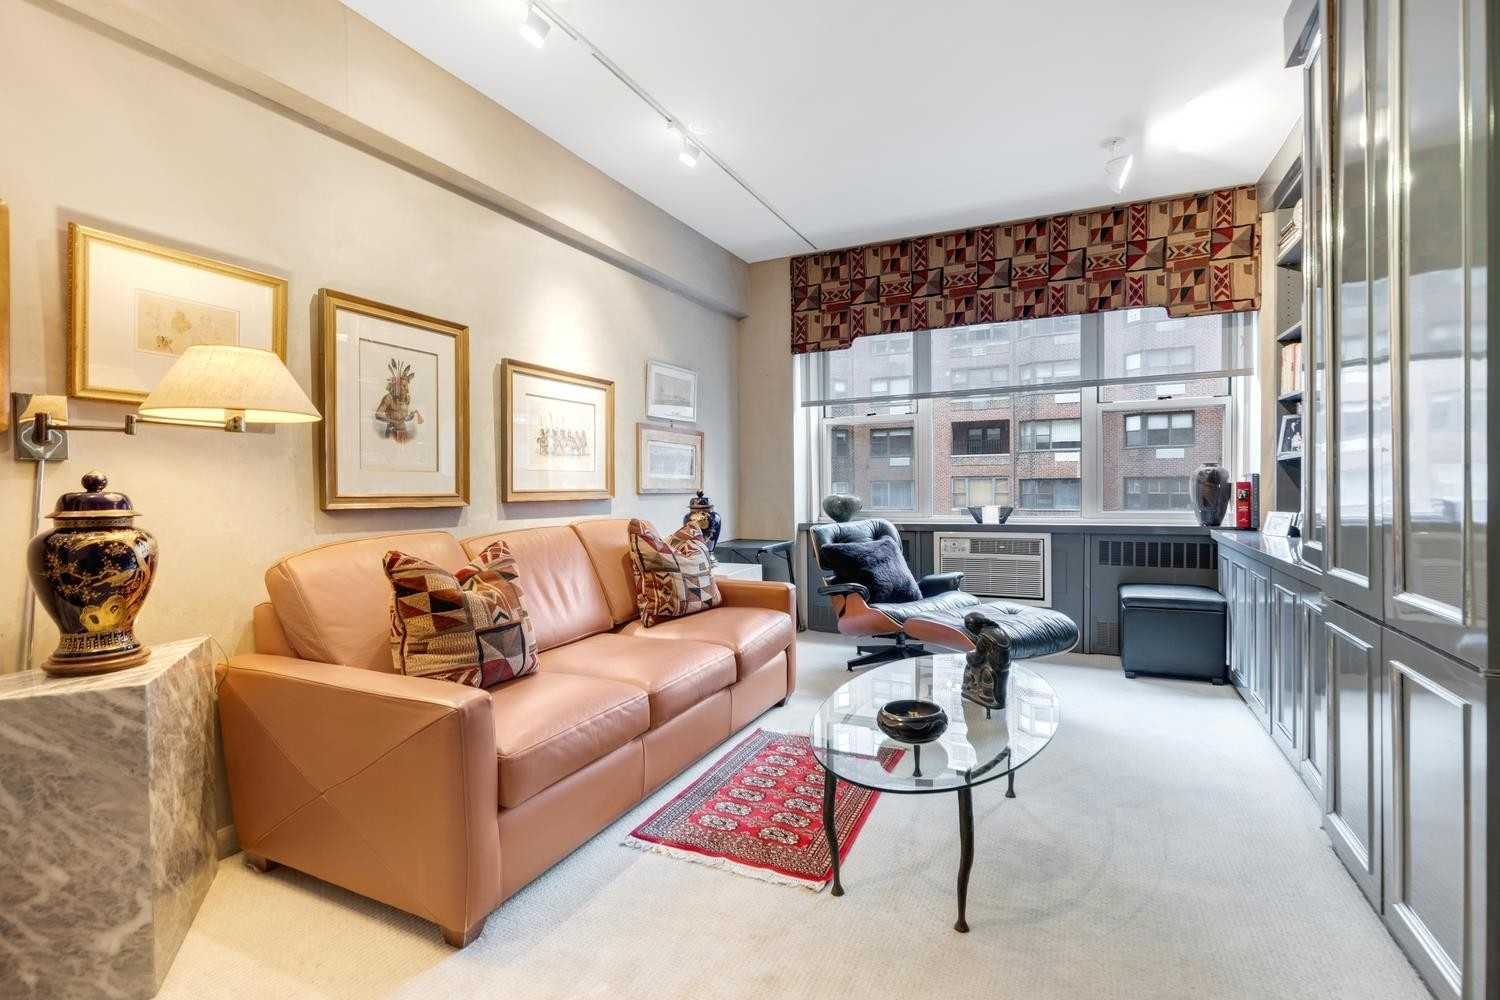 5. Co-op Properties for Sale at Cannon Point North, 25 SUTTON PL S, 11B Sutton Place, New York, NY 10022